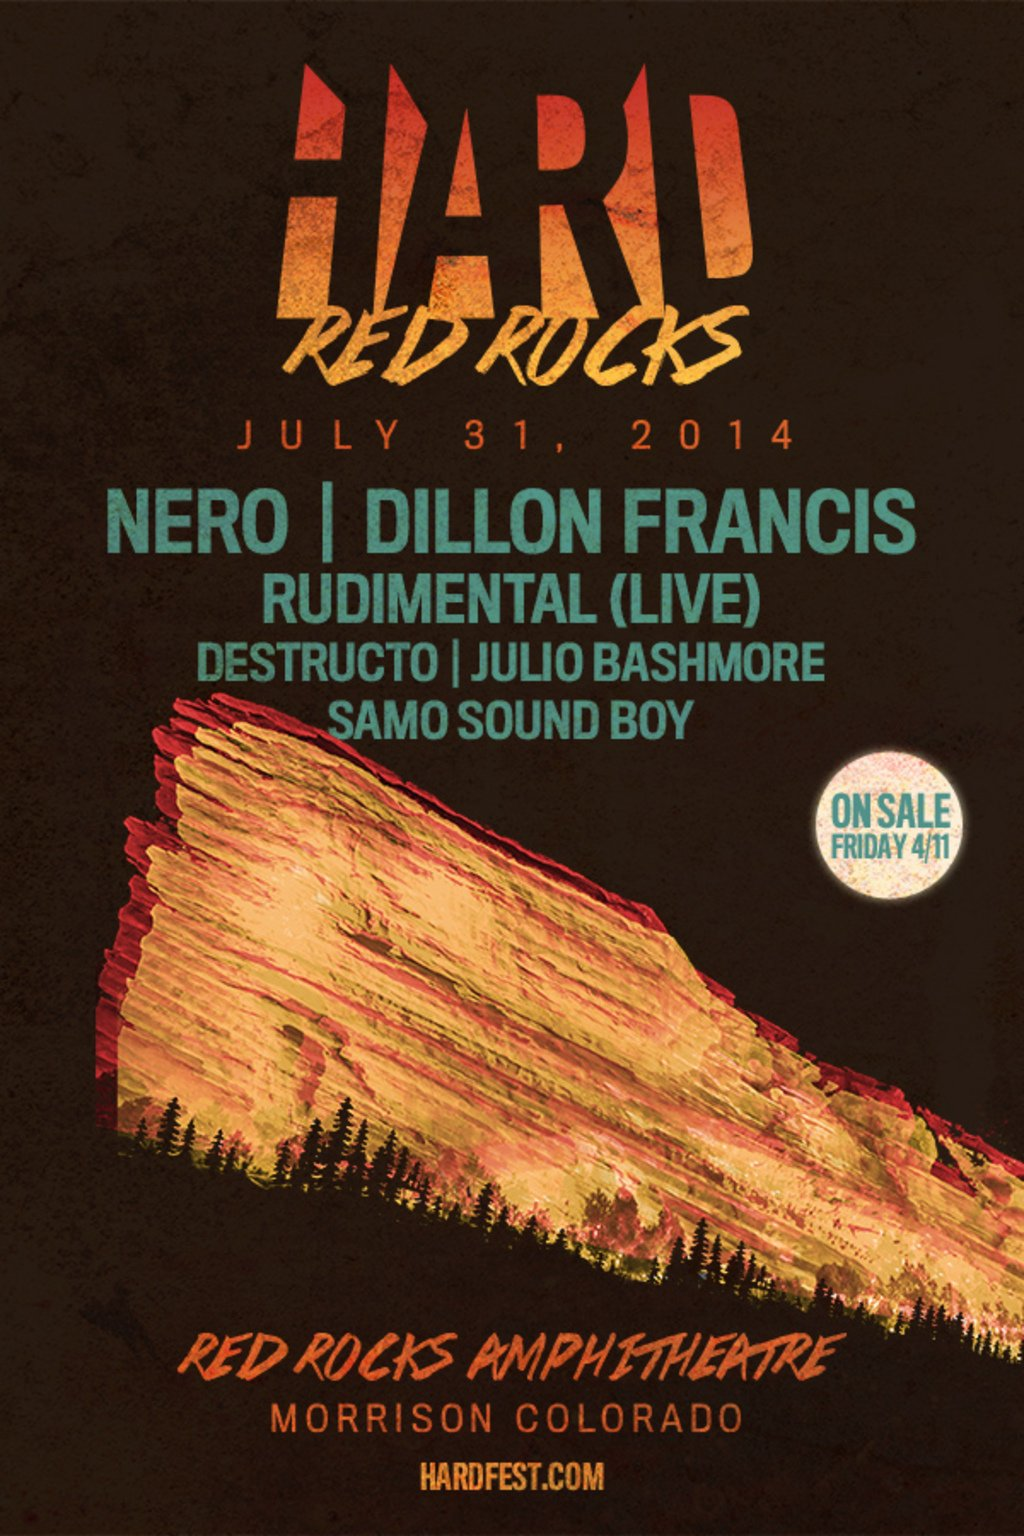 Official Hard Red Rocks Poster